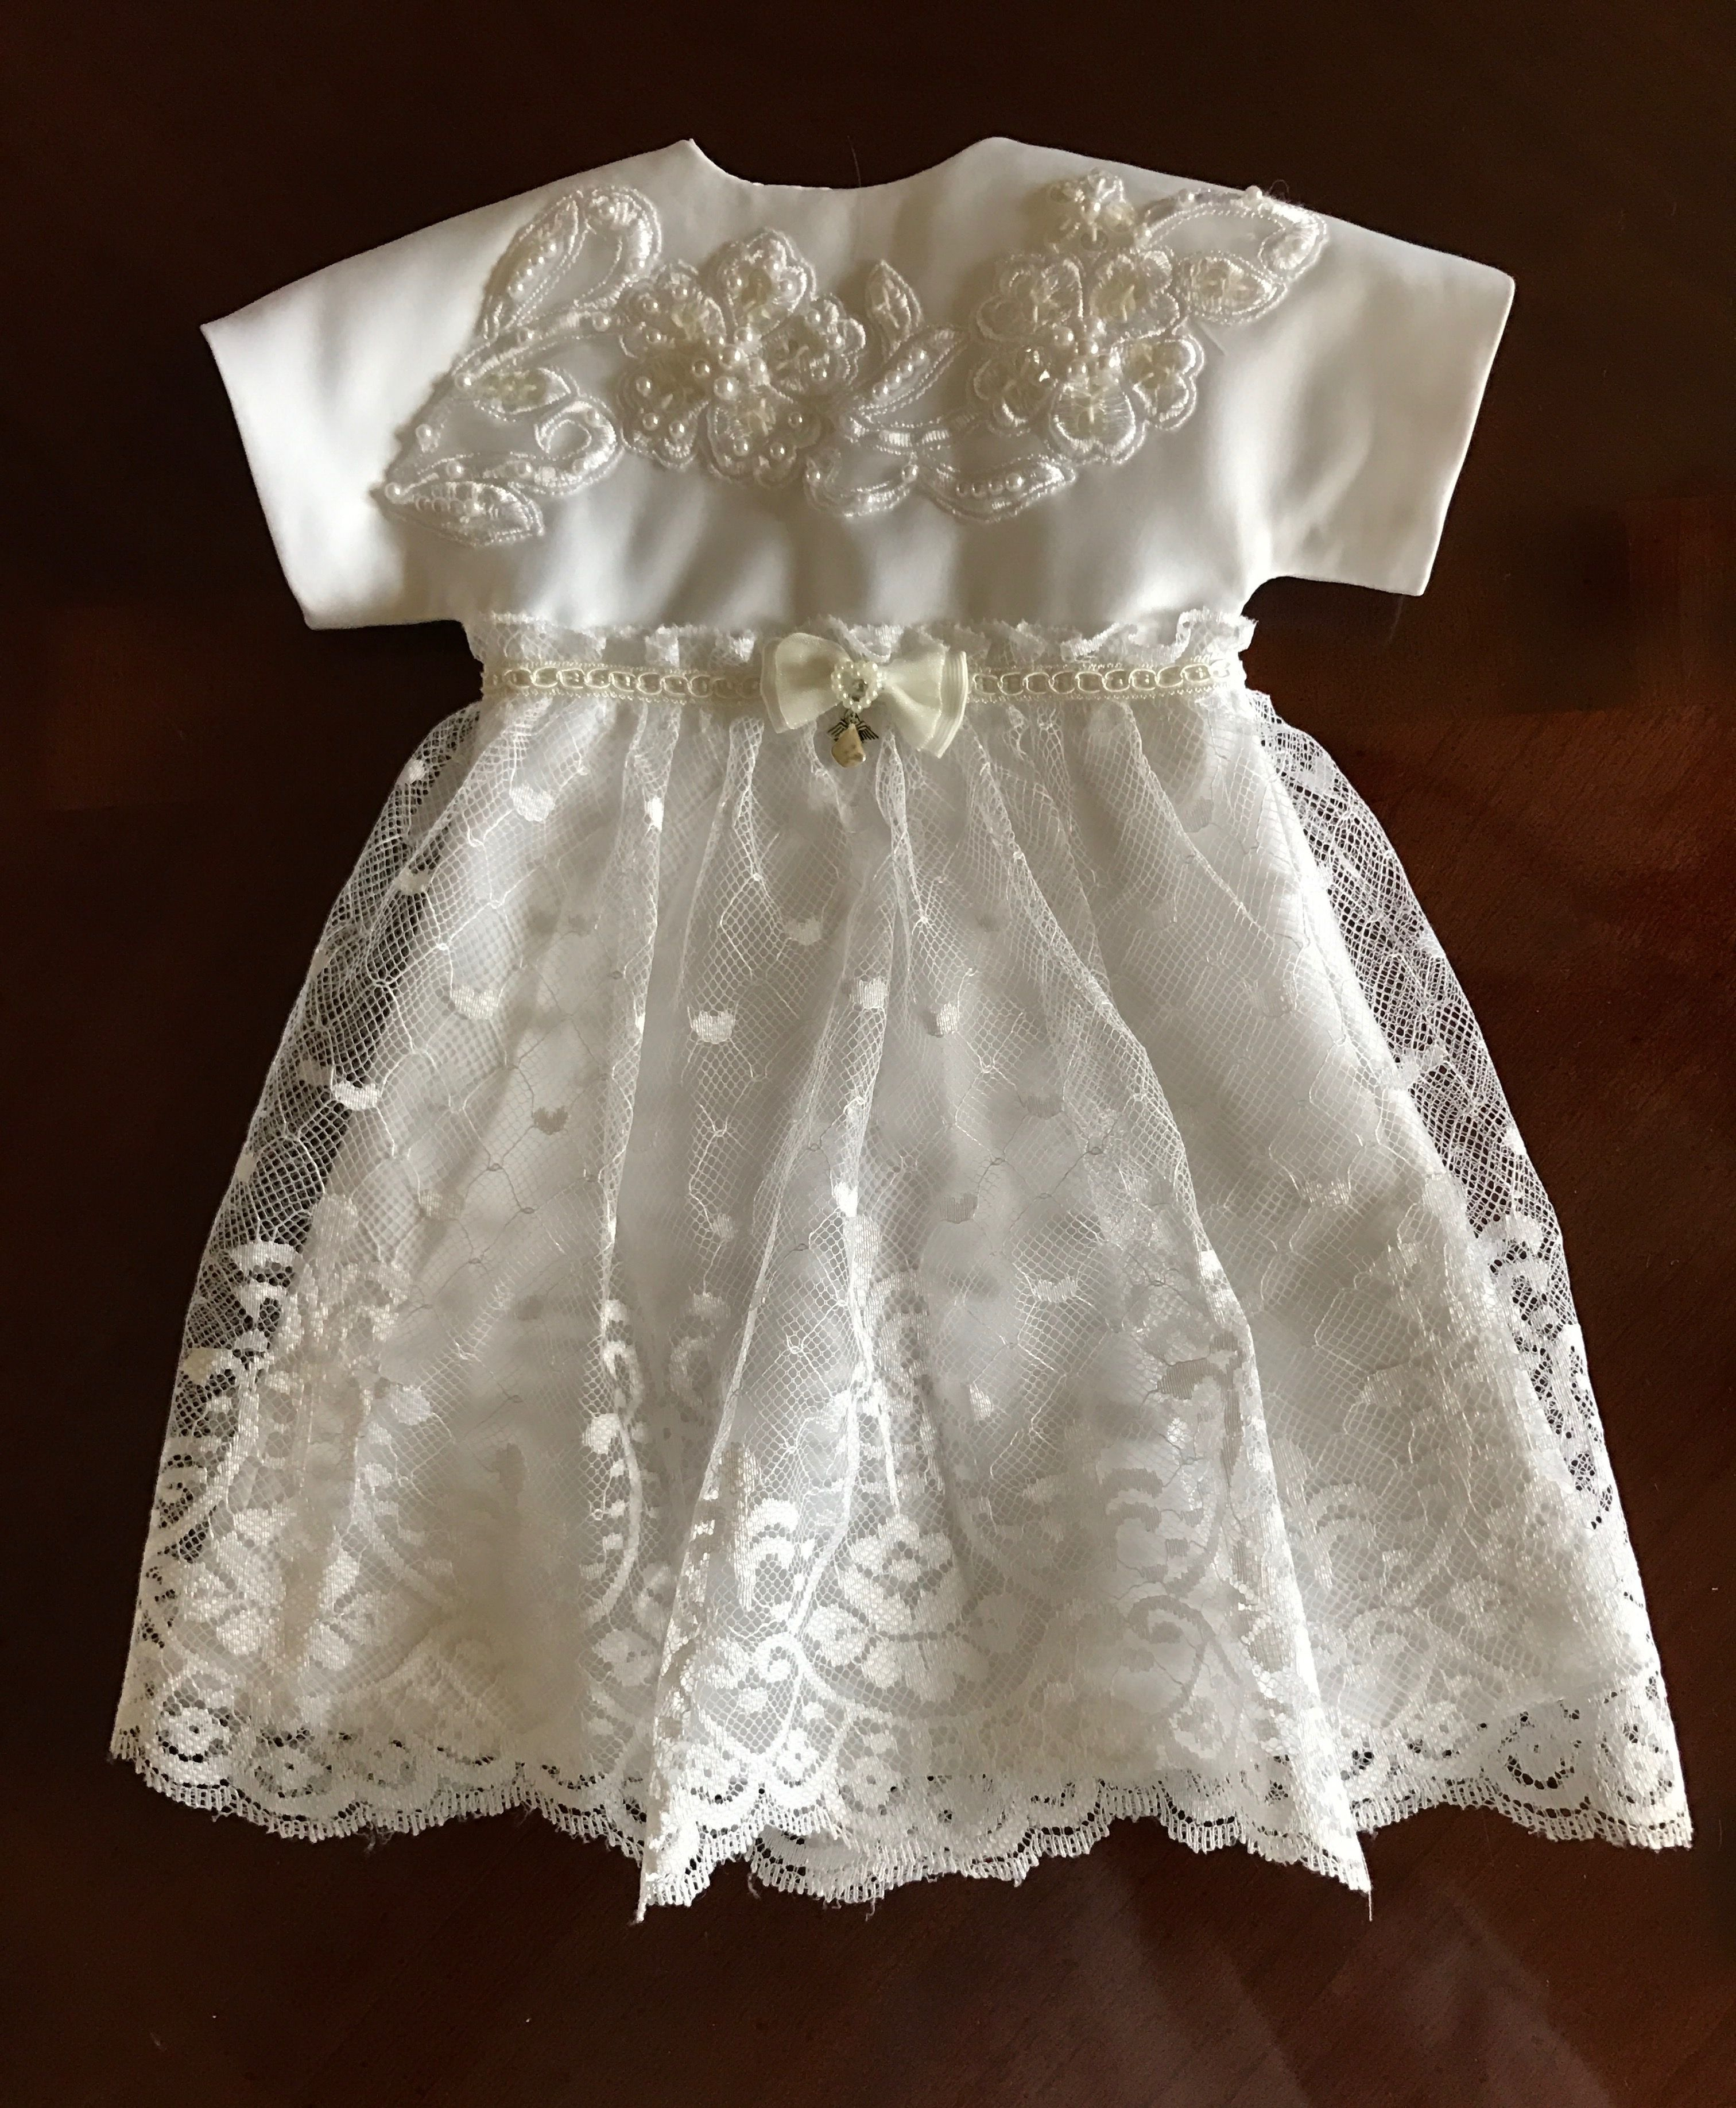 Angel gown | Angel Gowns | Pinterest | Angel, Gowns and Angel babies